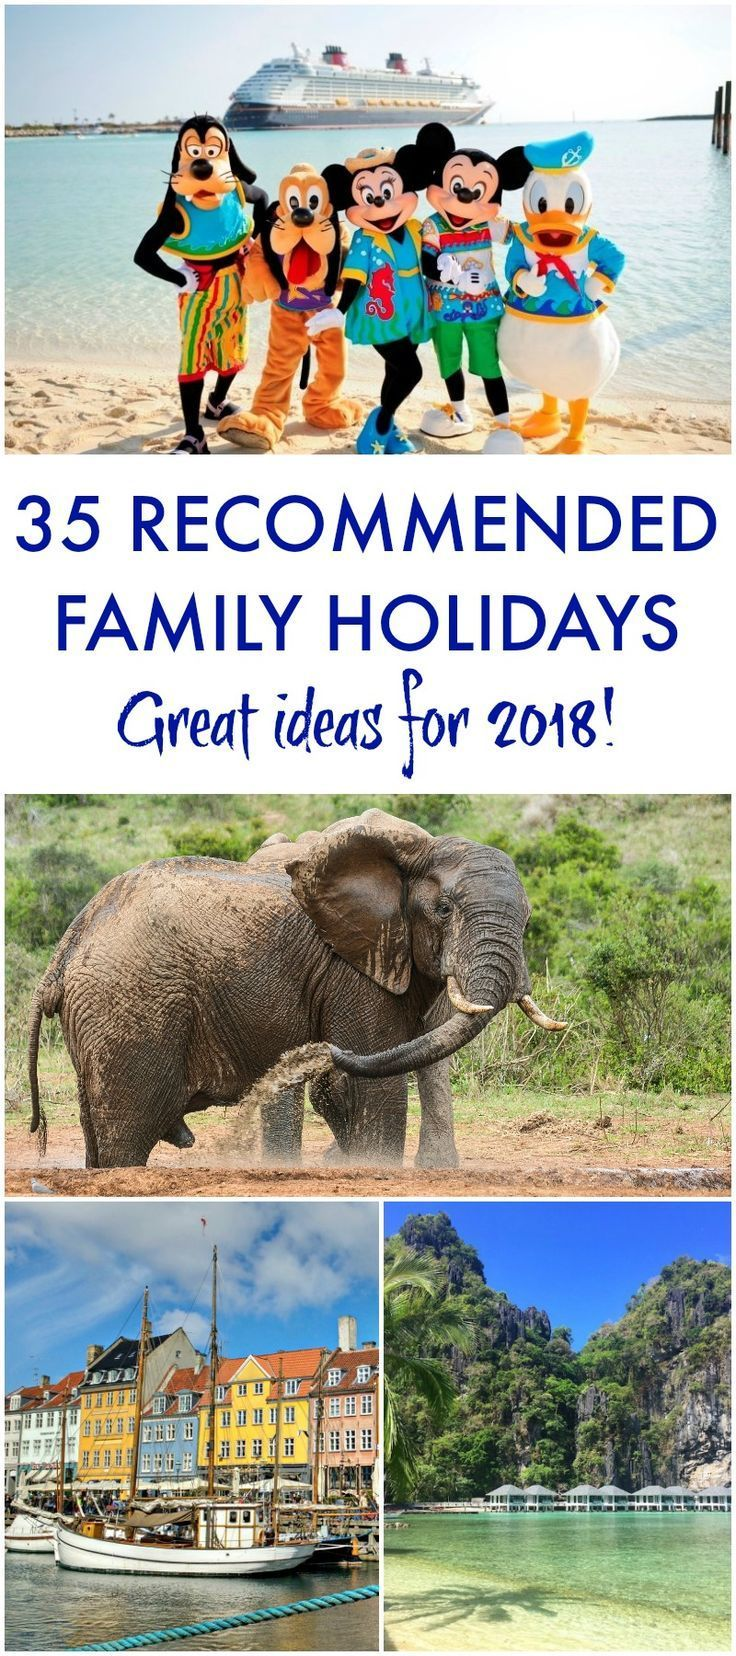 Family holiday ideas 2018: 35 of the best family holidays (UK and